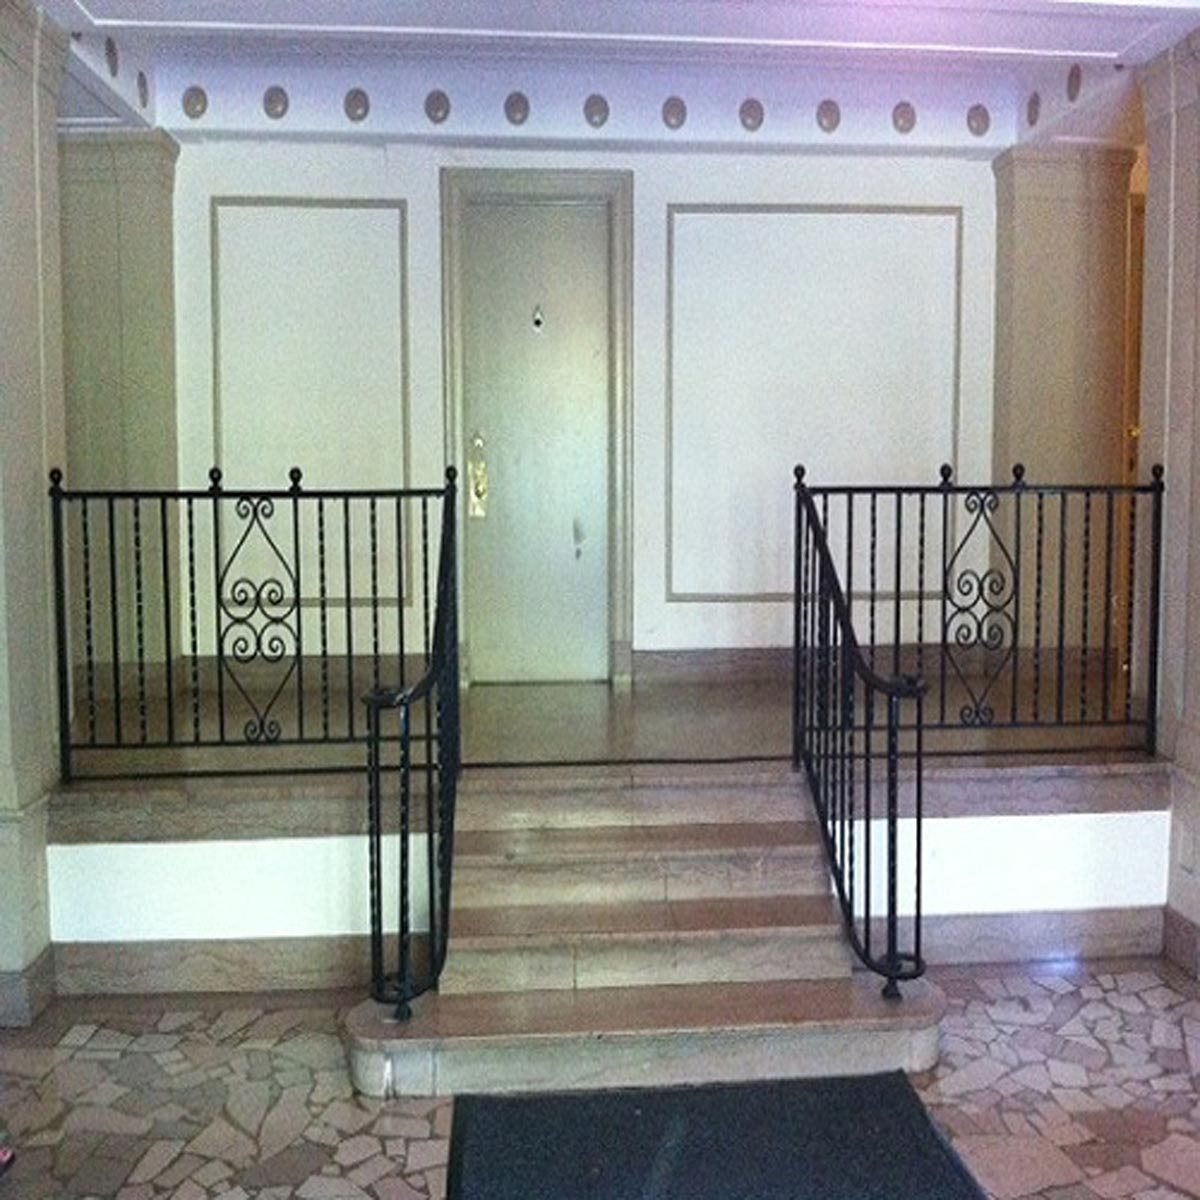 Staircase Entrance at Pershing House